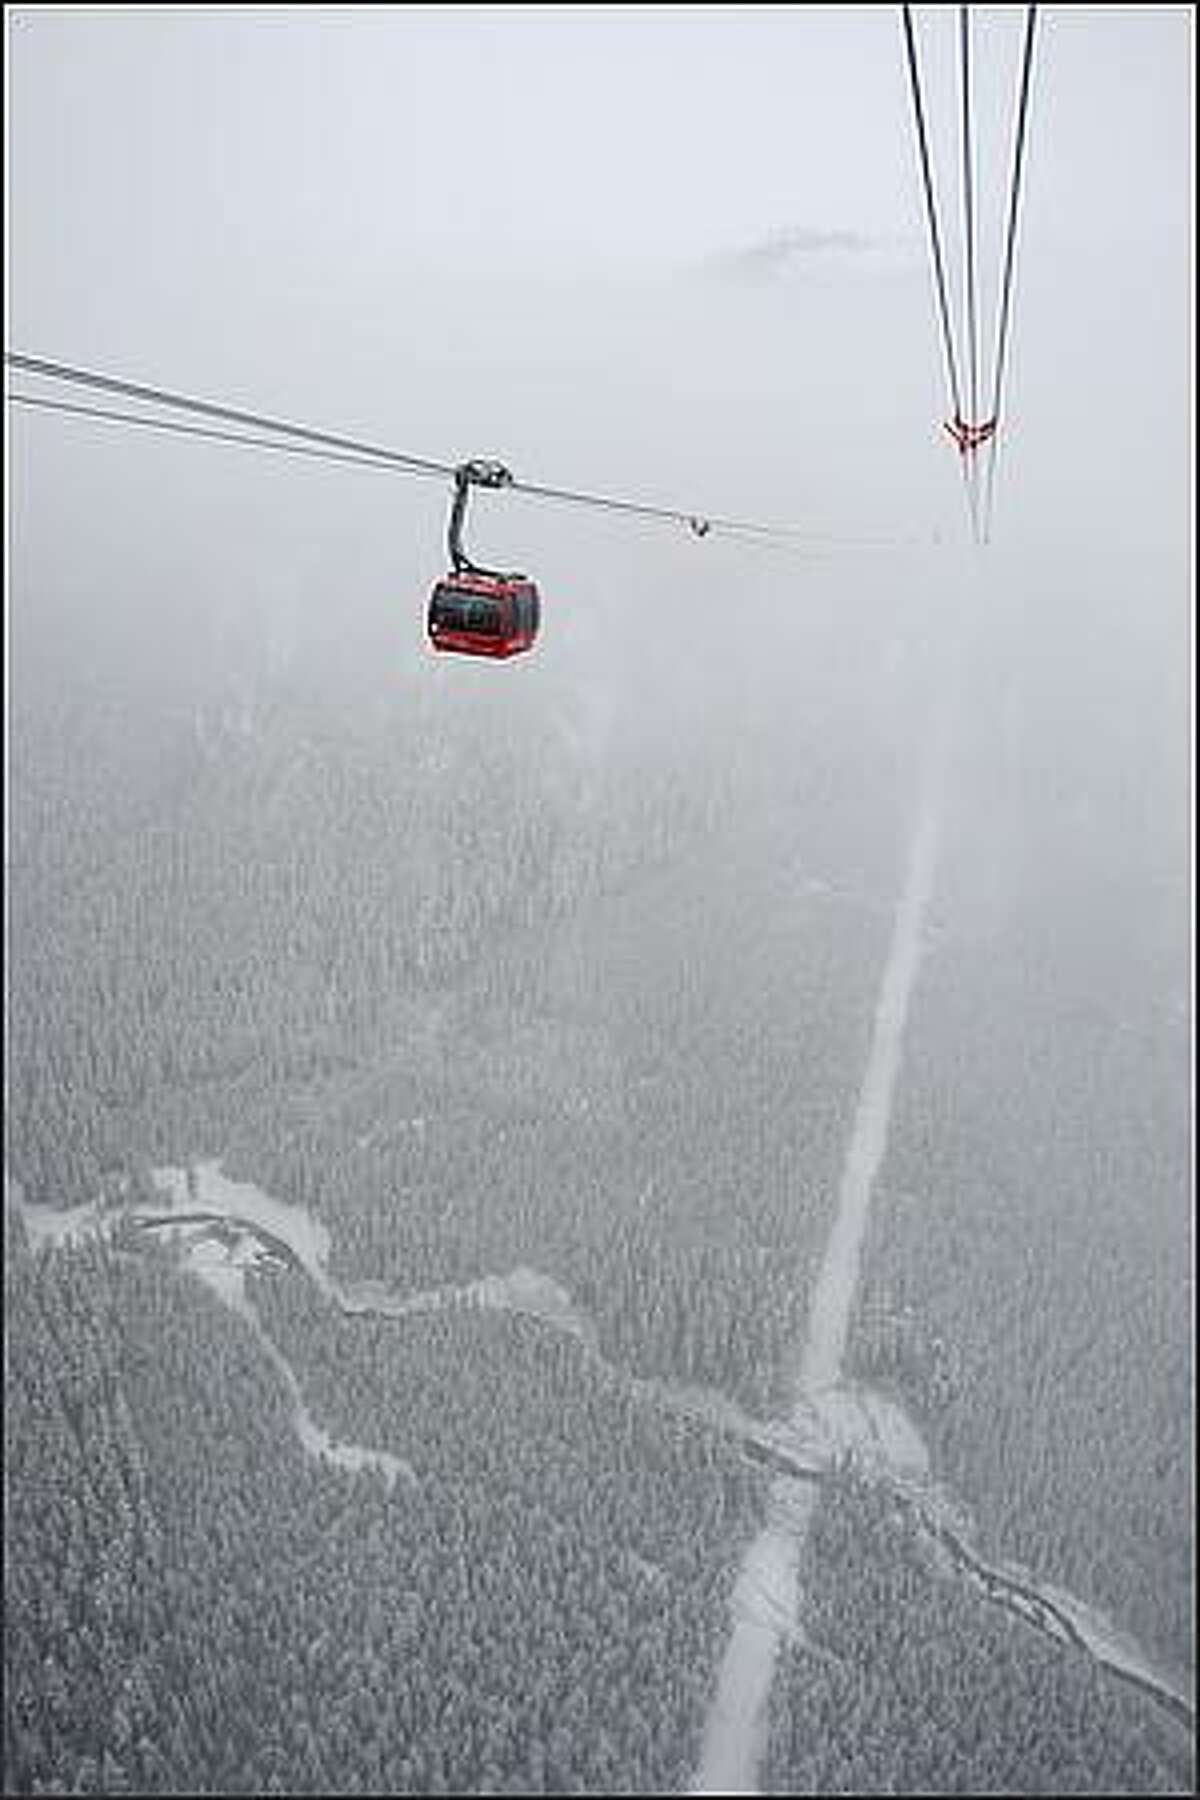 The Peak 2 Peak Gondola officially opens to the public, connecting Blackcomb and Whistler peaks.